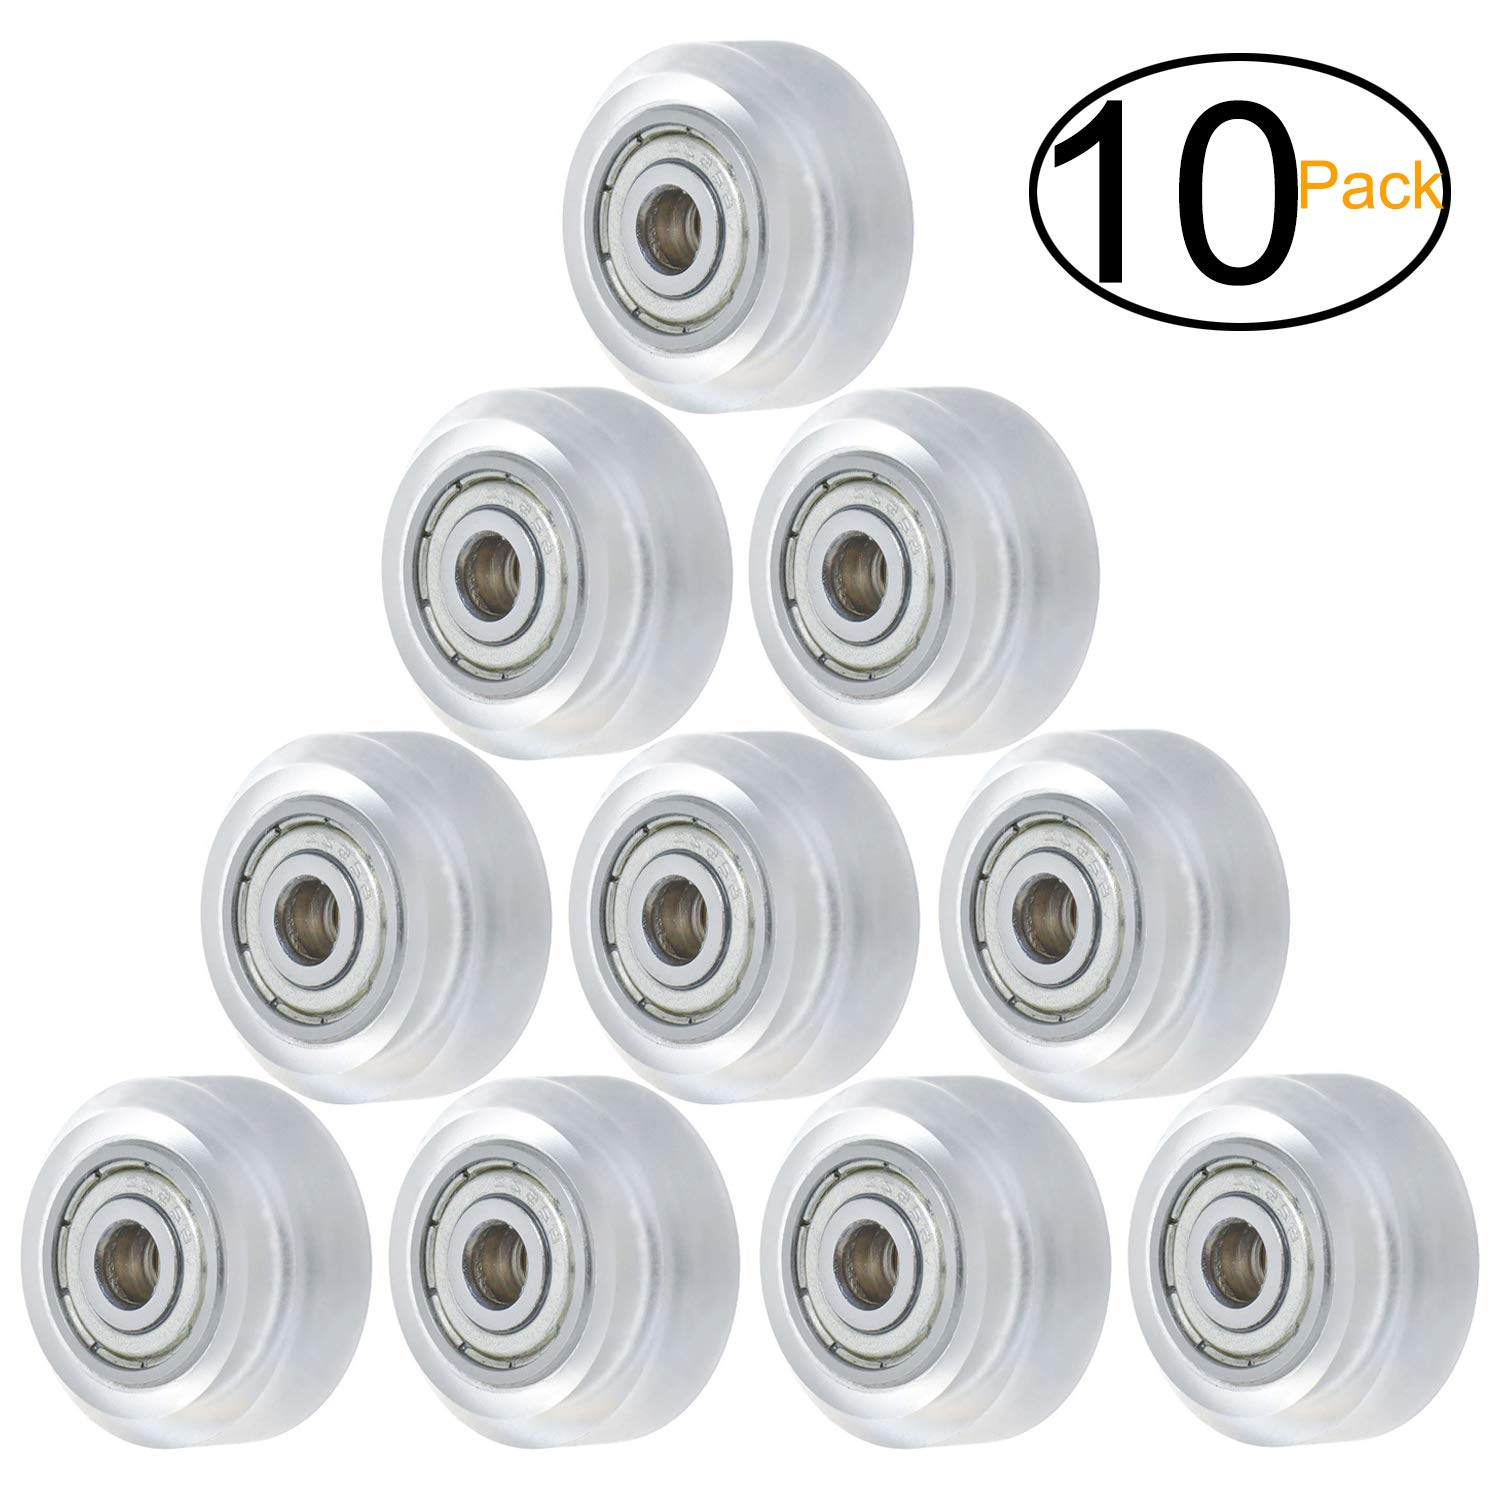 CHEERBRIGHT 20pcs Nylon Small Roller Bearings Plastic Pulley Wheels for Door Windows Furniture Shower Accessories 5x23x7.5mm